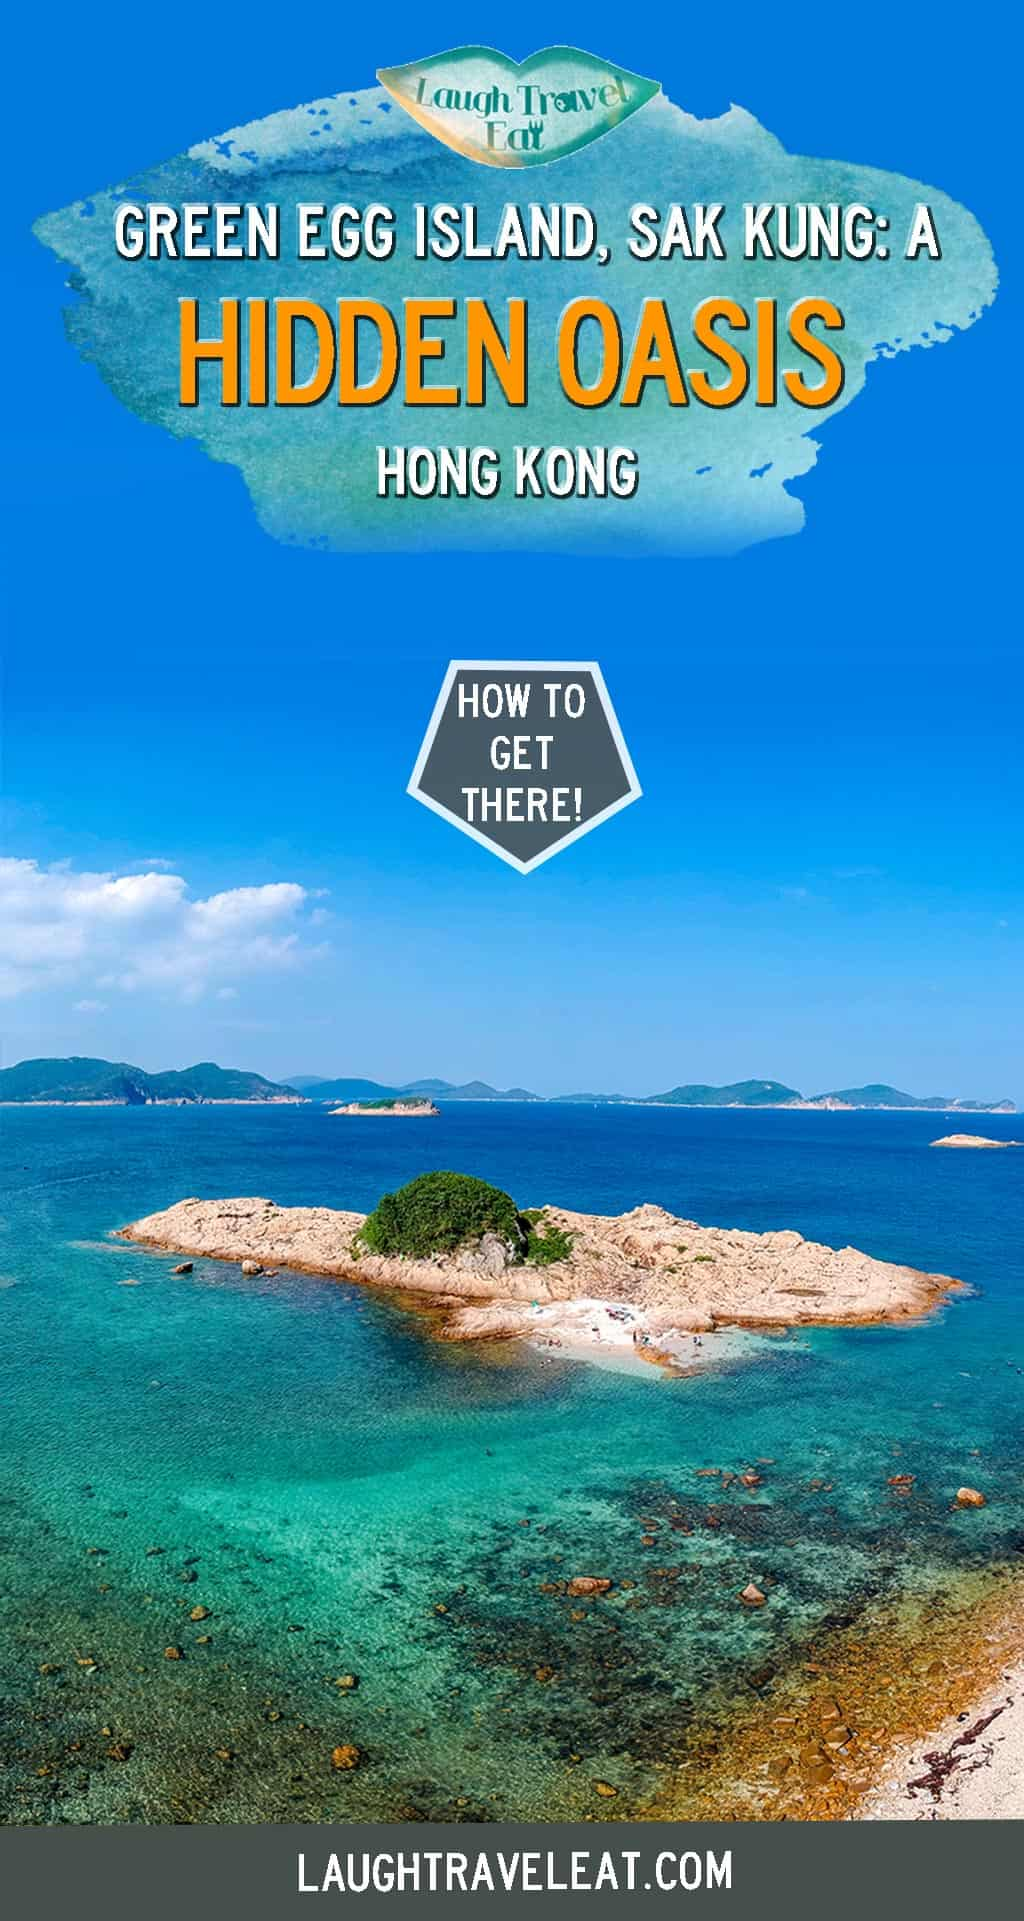 Looking for a hidden oasis for some hike + swim action in the busy Hong Kong? The Green Egg Island is the locals' best kept secret off Clear Water Bay. Here's how to get there and what to expect: #HongKong #hike #swim #oasis